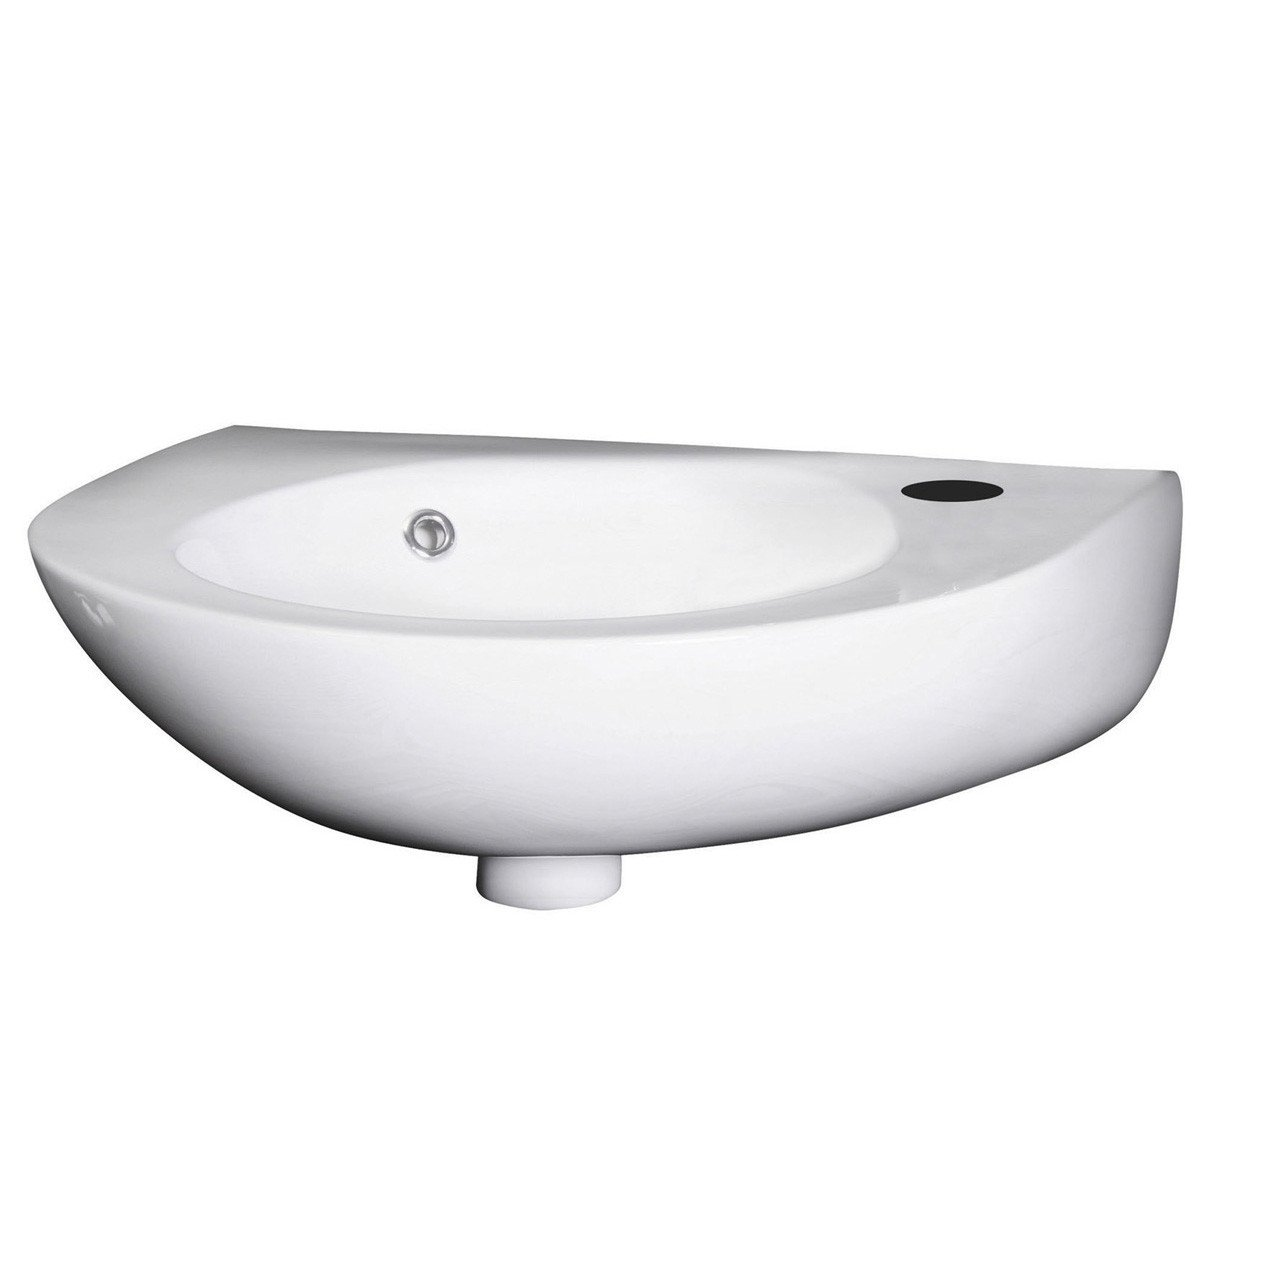 Nuie 350mm Wall Hung Basin with 1 Tap Hole - NCU932